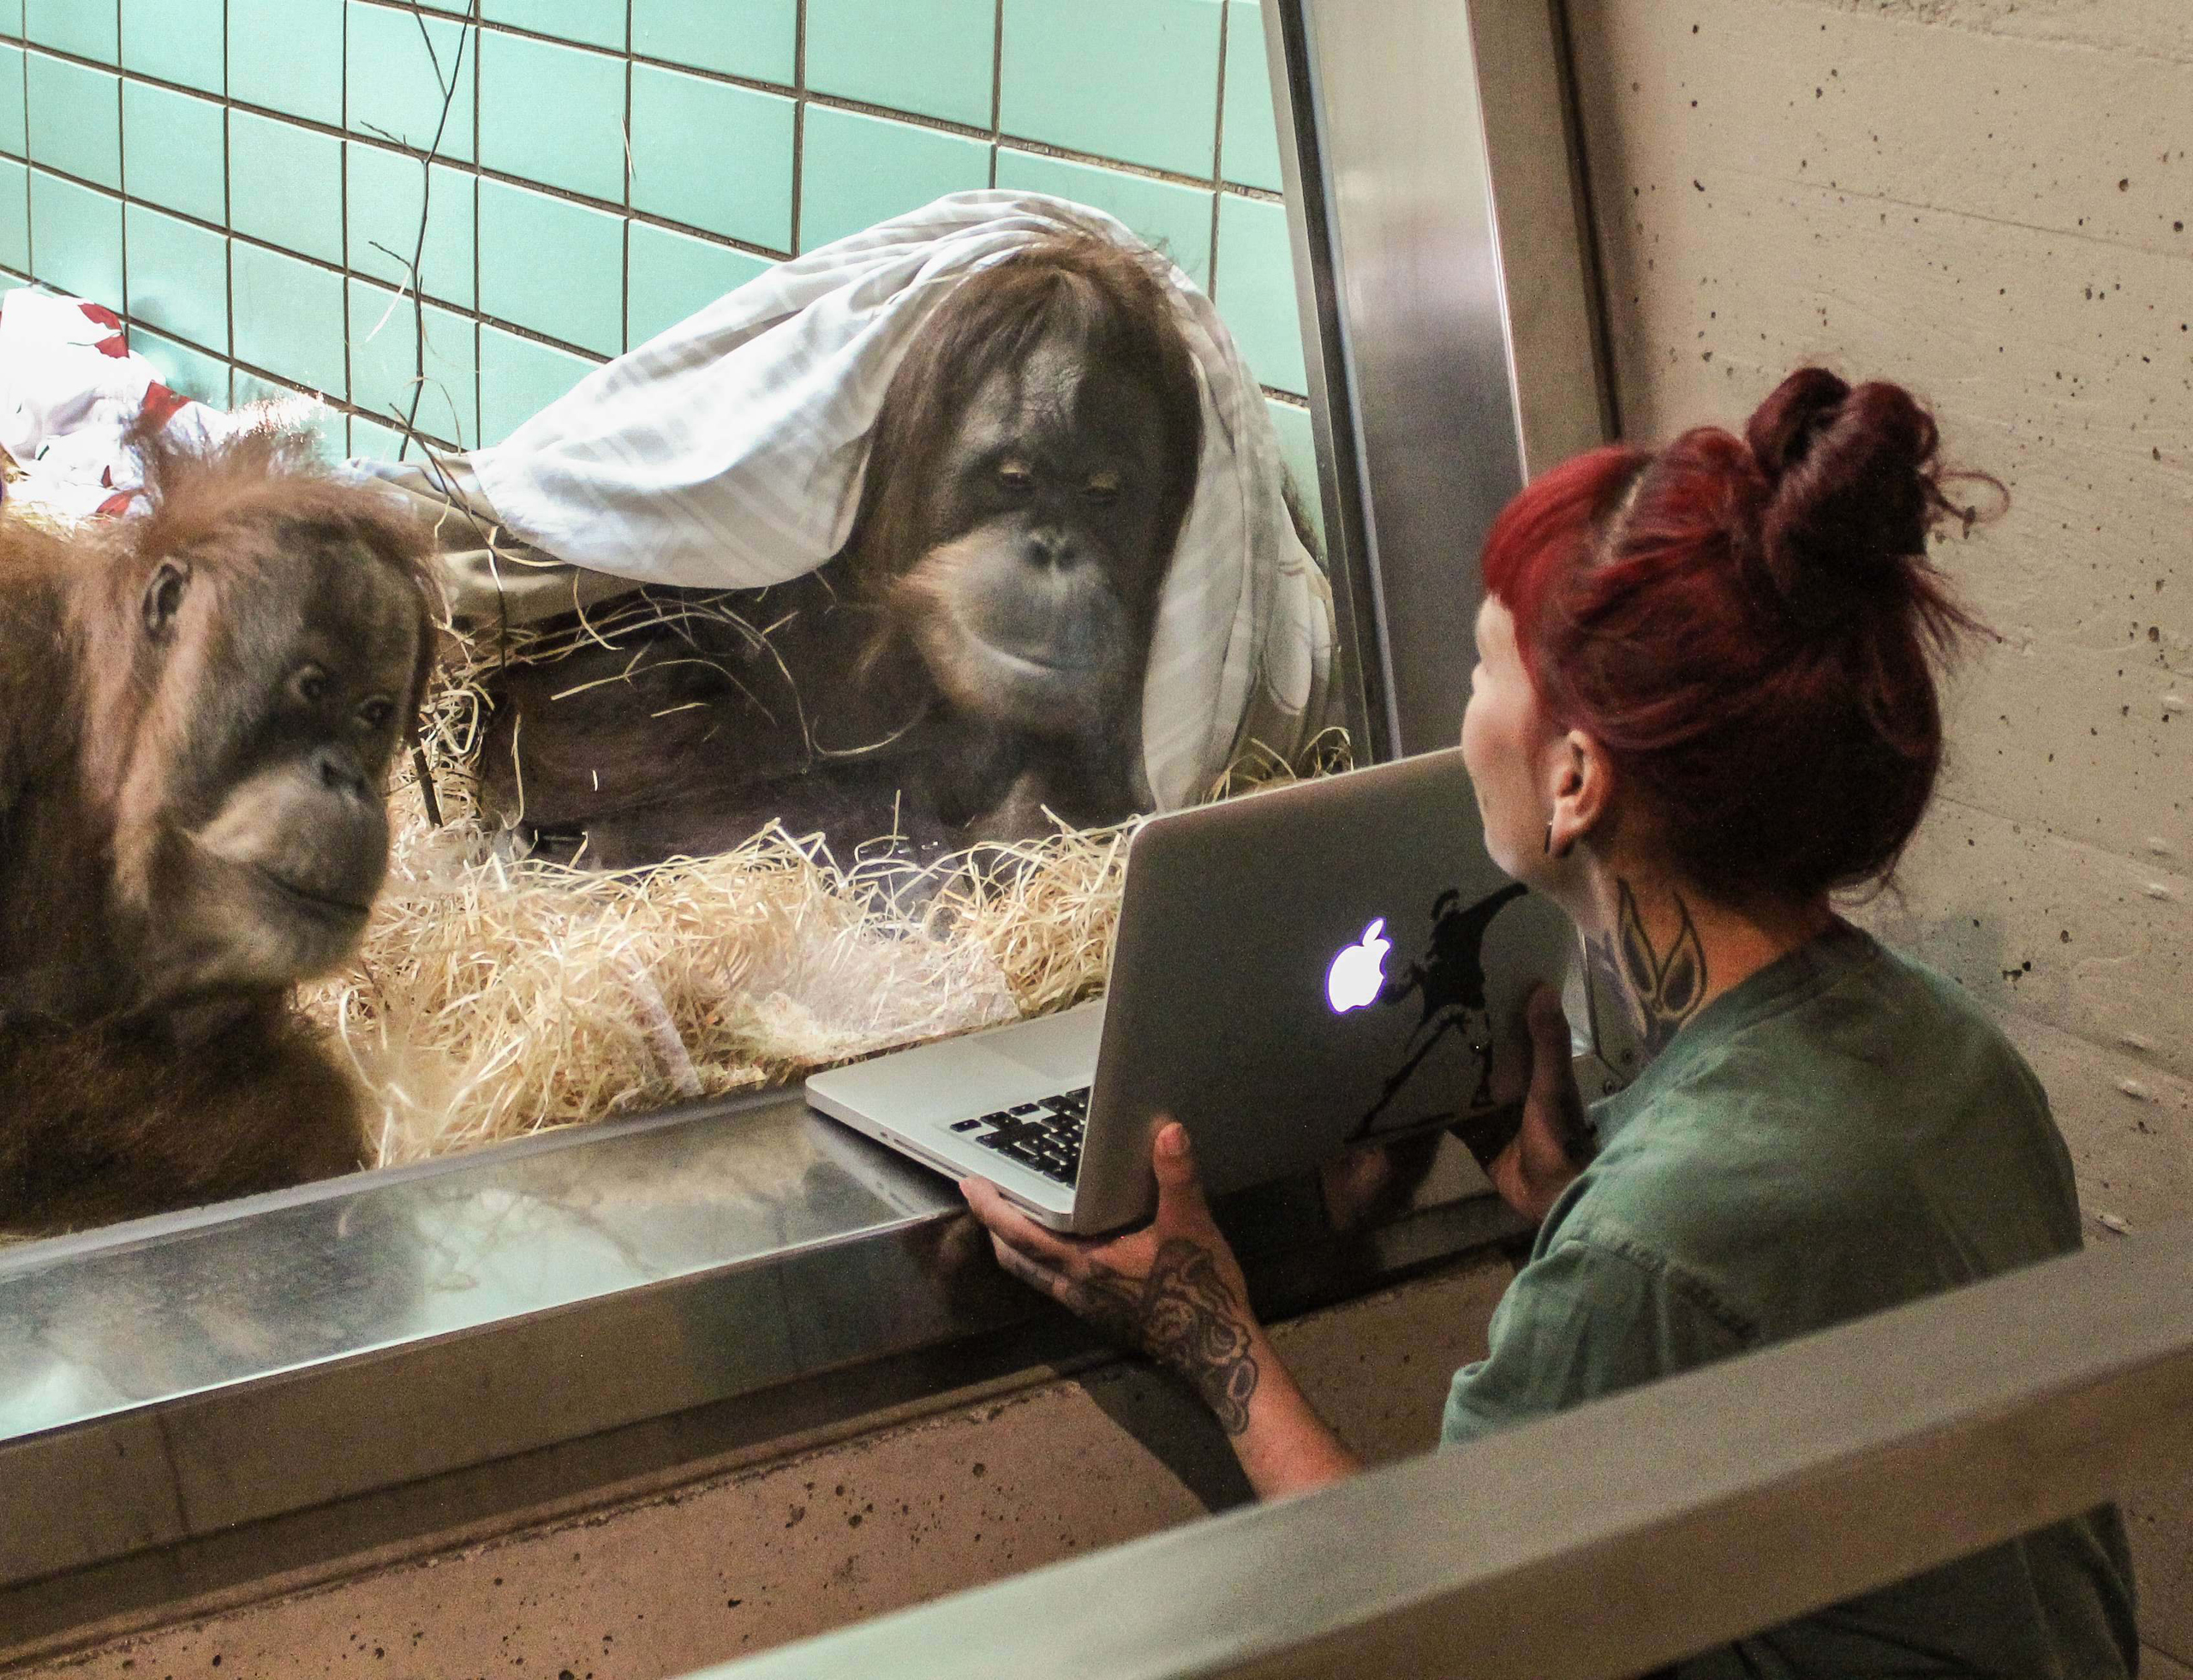 Conny, left, and Sinta, right, together watch video of Orangutan male Gempa.